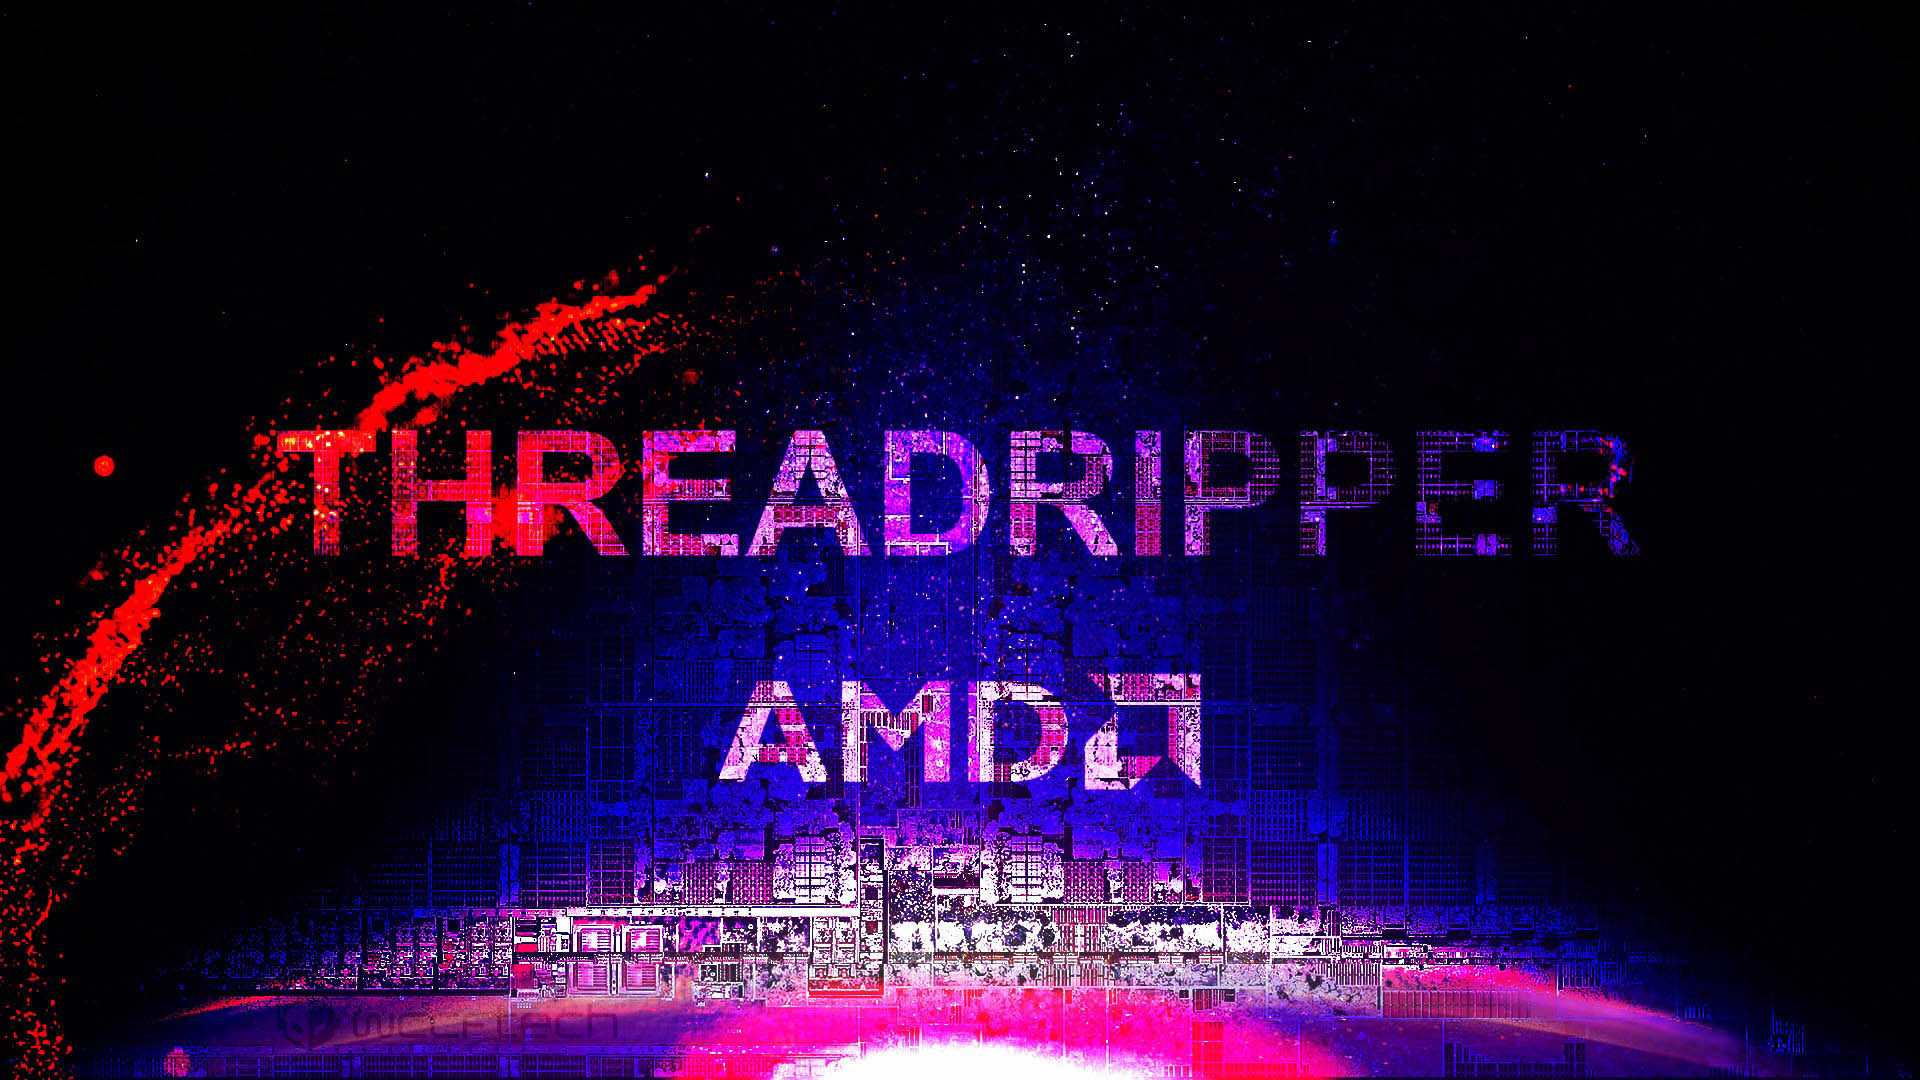 AMD has introduced a 16-core processor Ryzen Threadripper